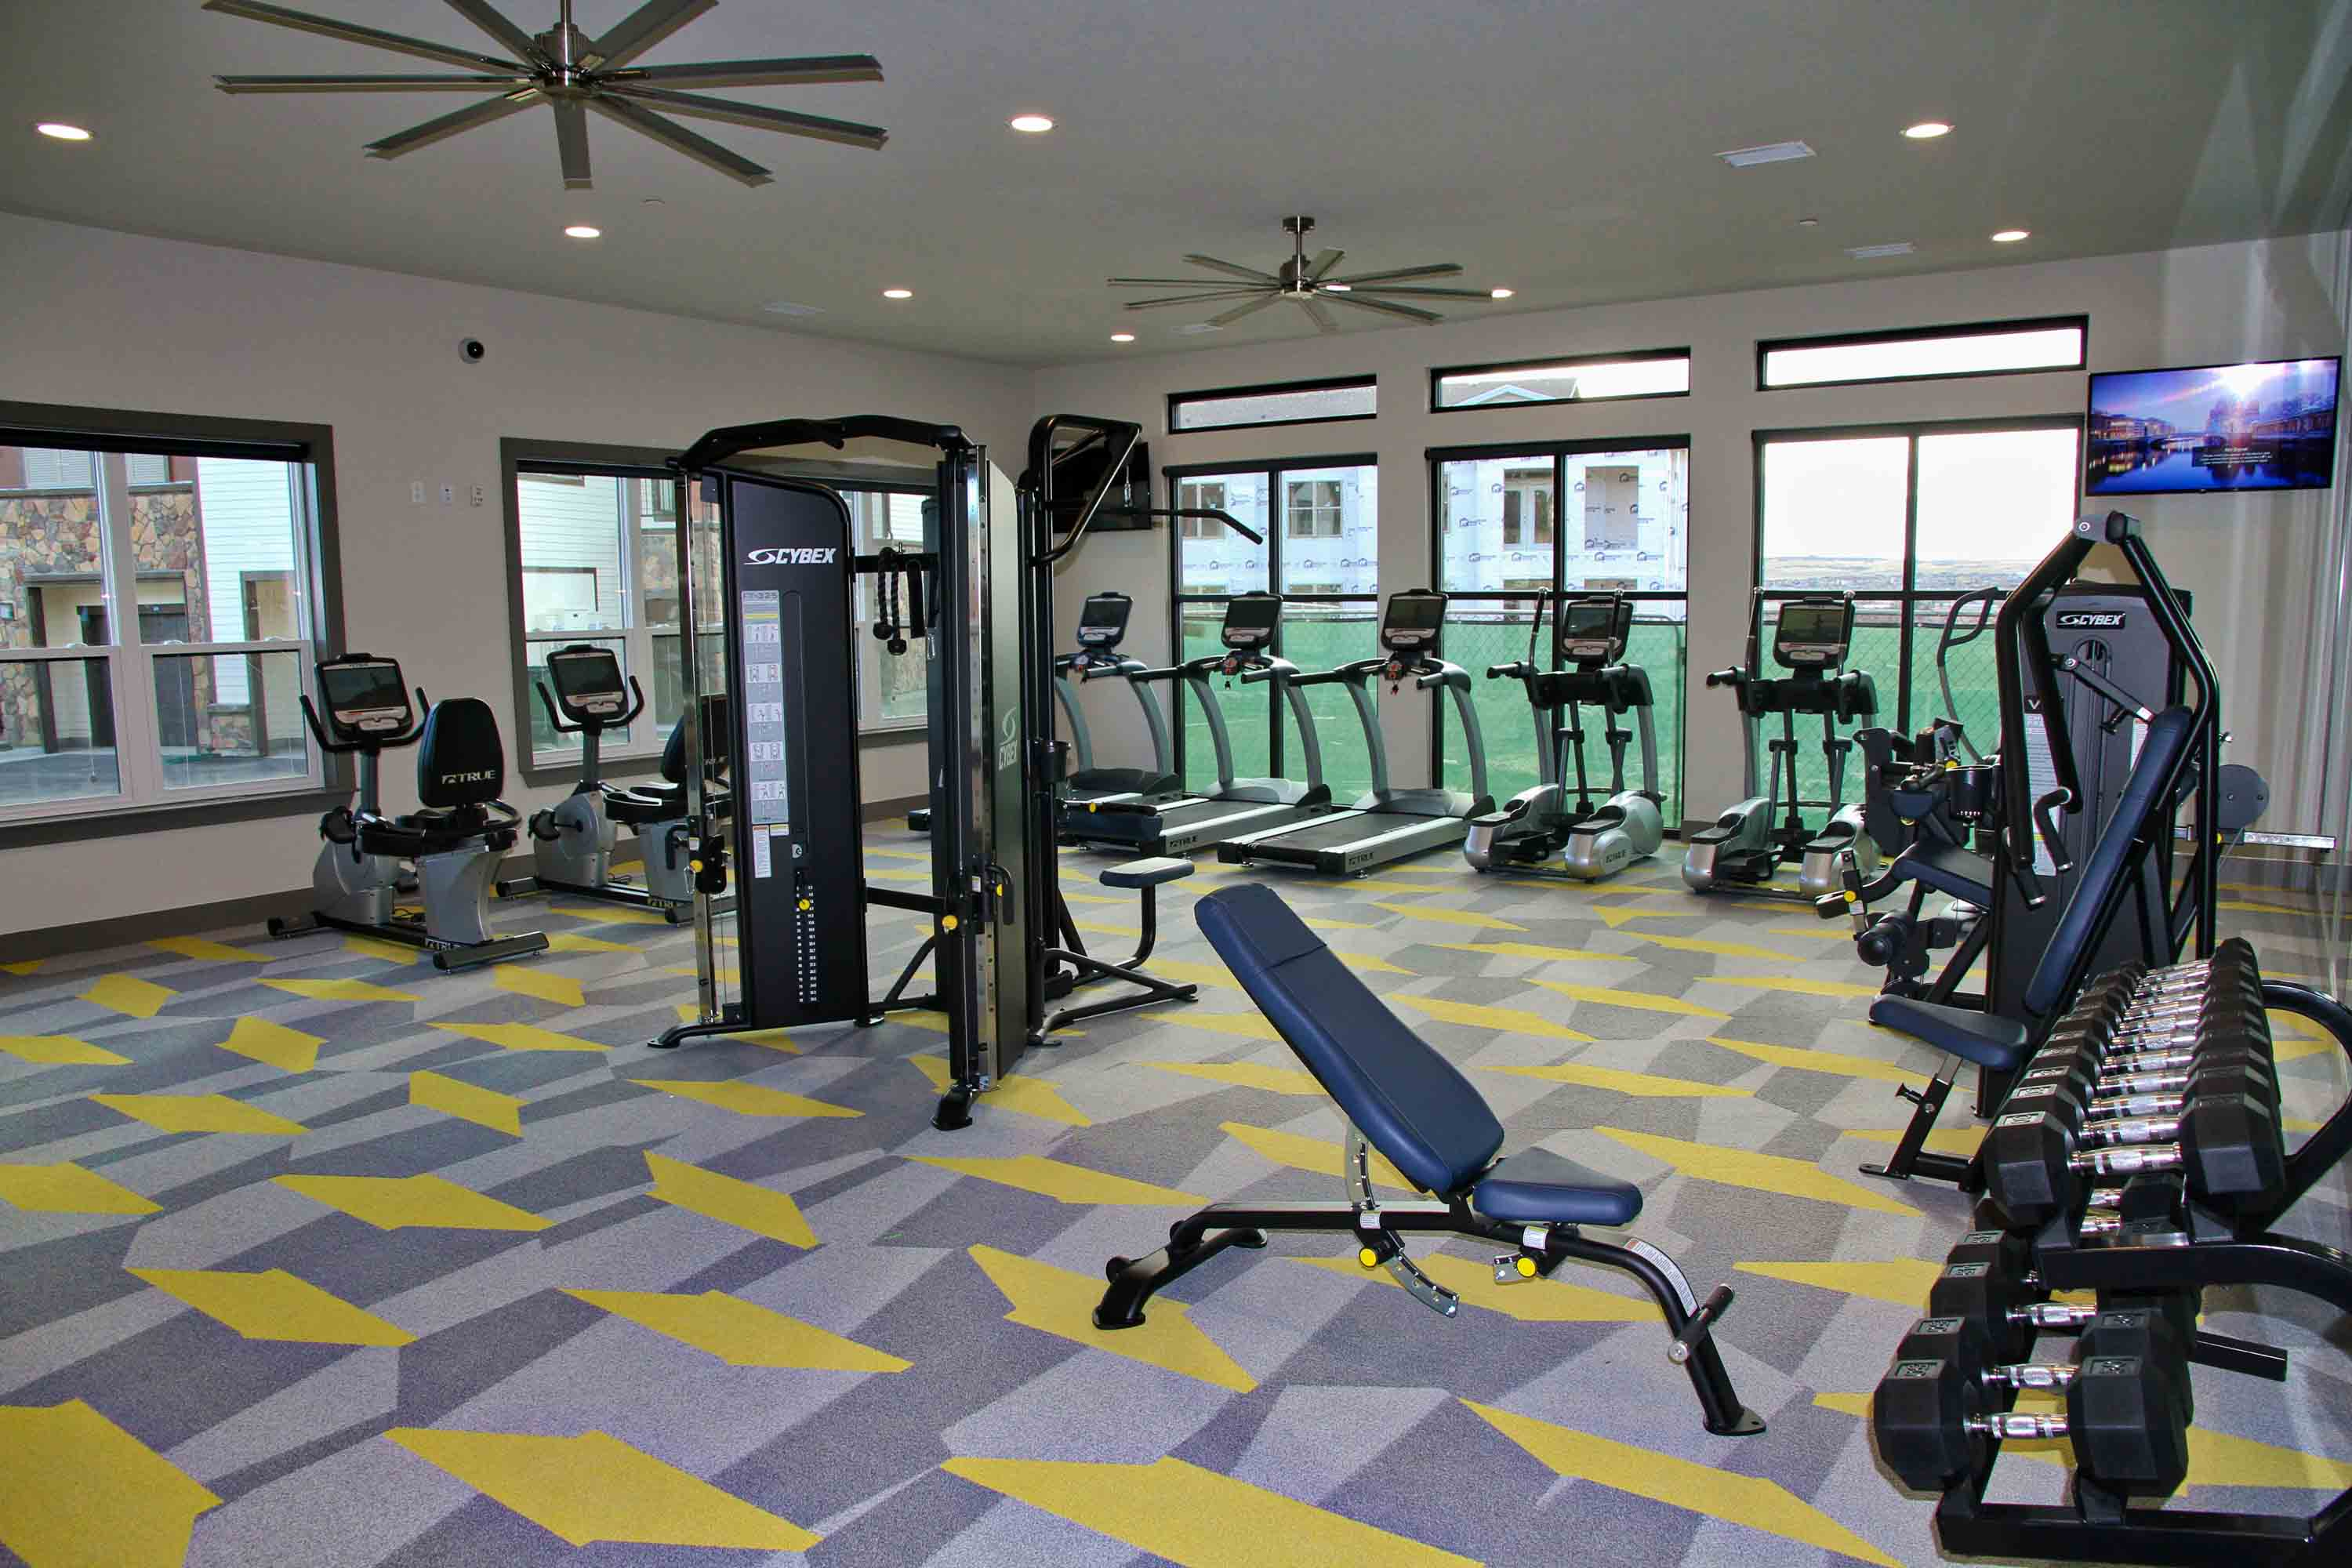 Fitness center with cardio and weight machines, dumbbell rack, and tall windows with natural light.